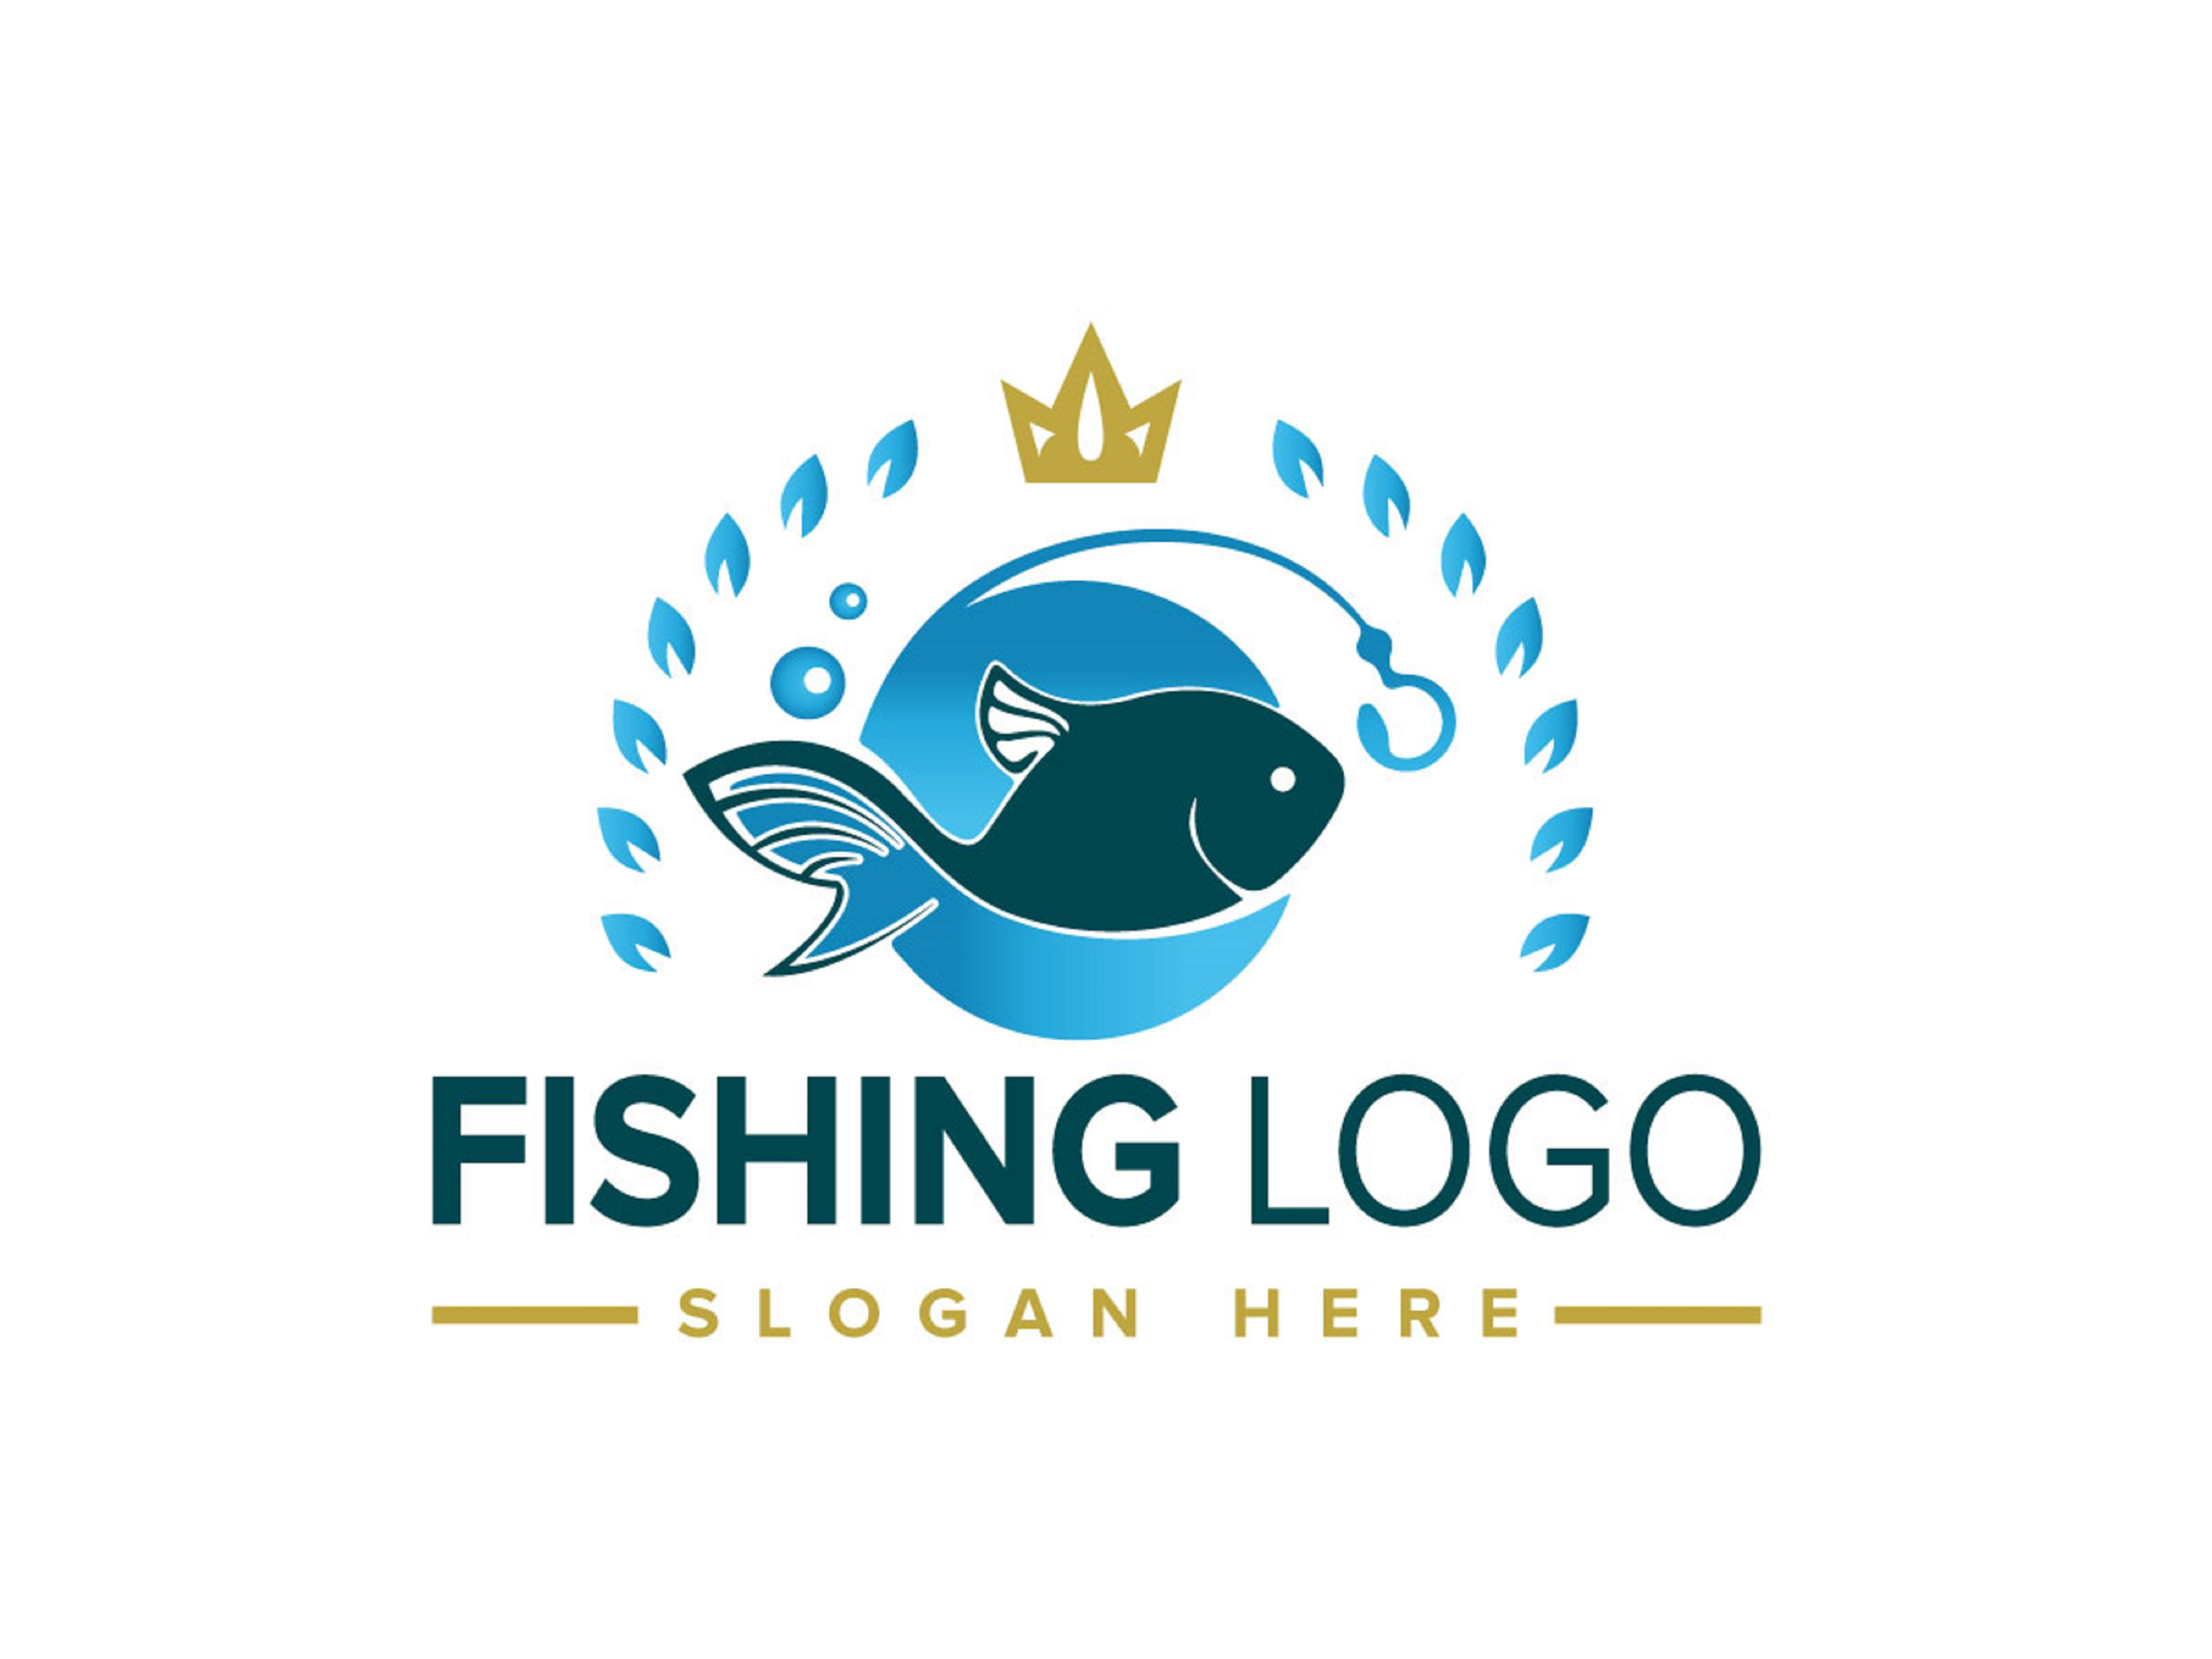 Download Fishing Logo Illustration Vector Graphic By Freelancer Azad Creative Fabrica